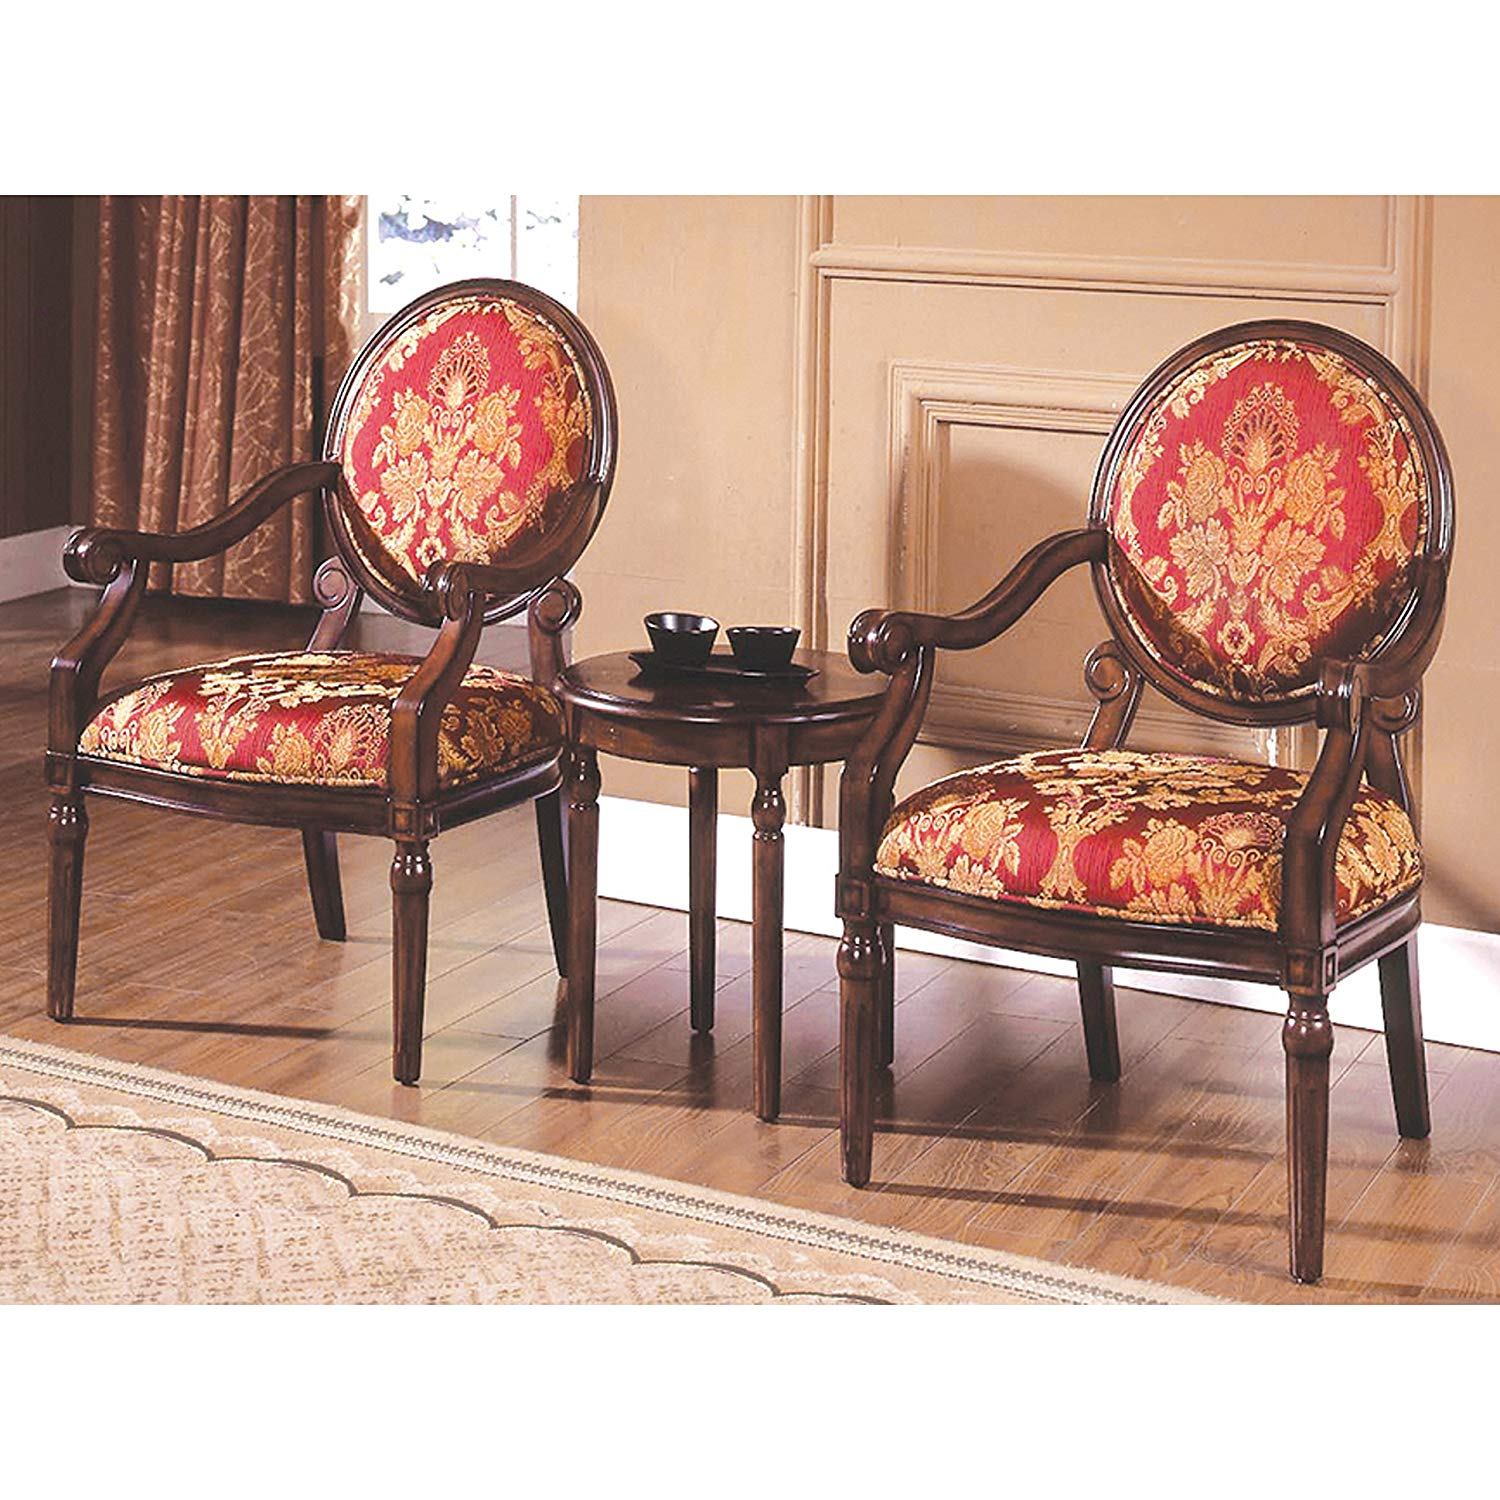 best master furniture maddison traditional accent chairs with table living room chair set kitchen dining decorative storage cabinets solid wood farmhouse gray chest home goods